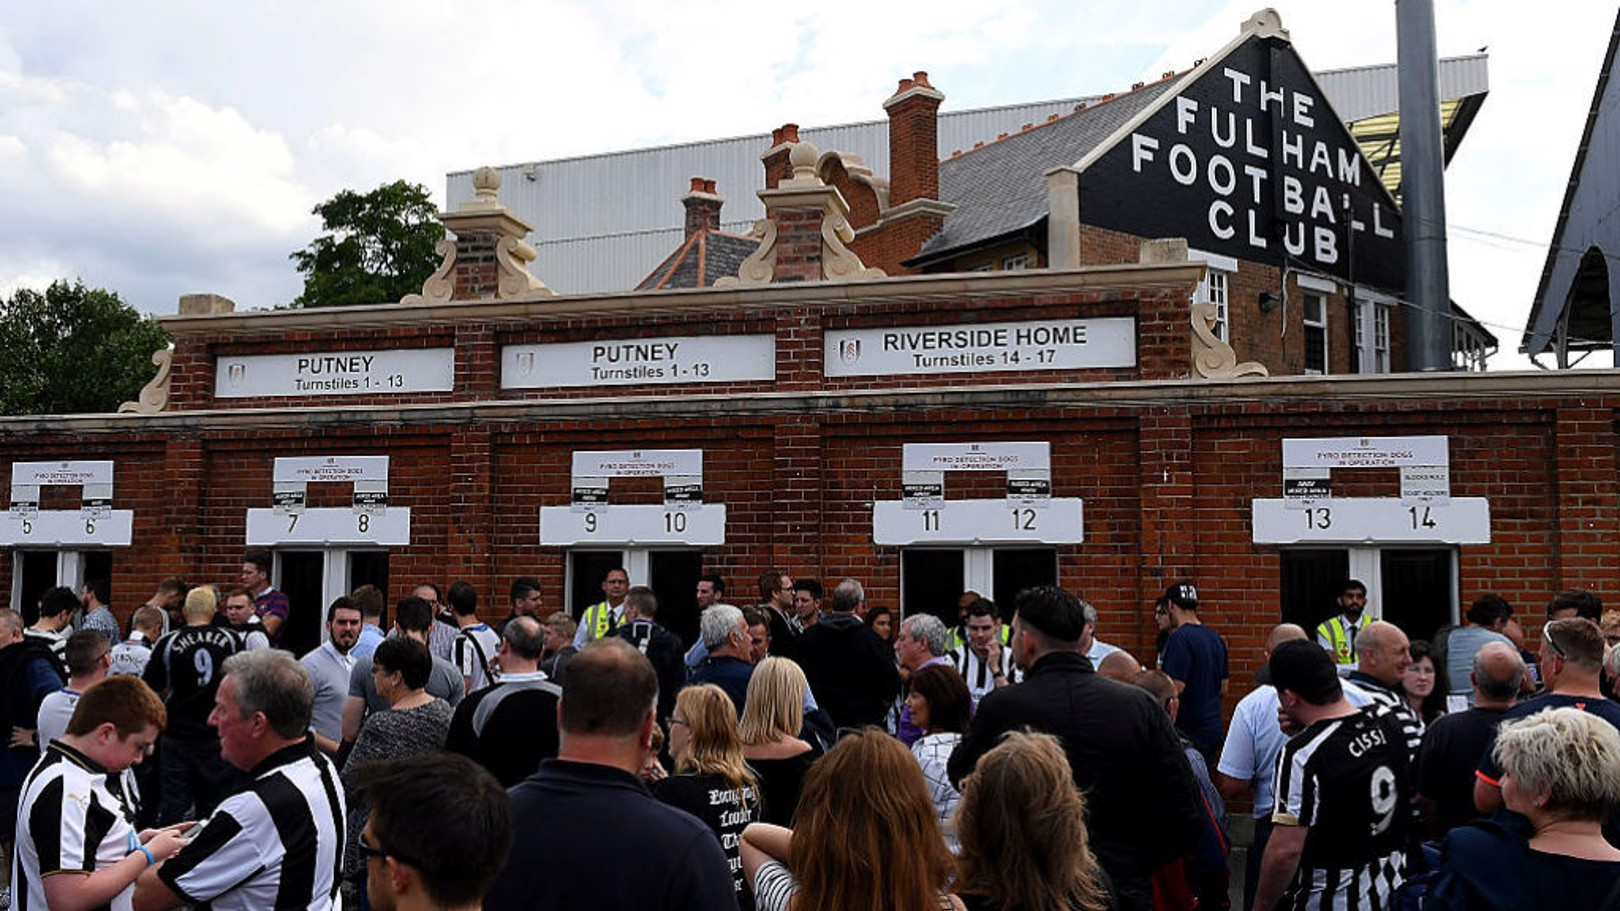 SOLD OUT: City's allocation for the Fulham game has sold out